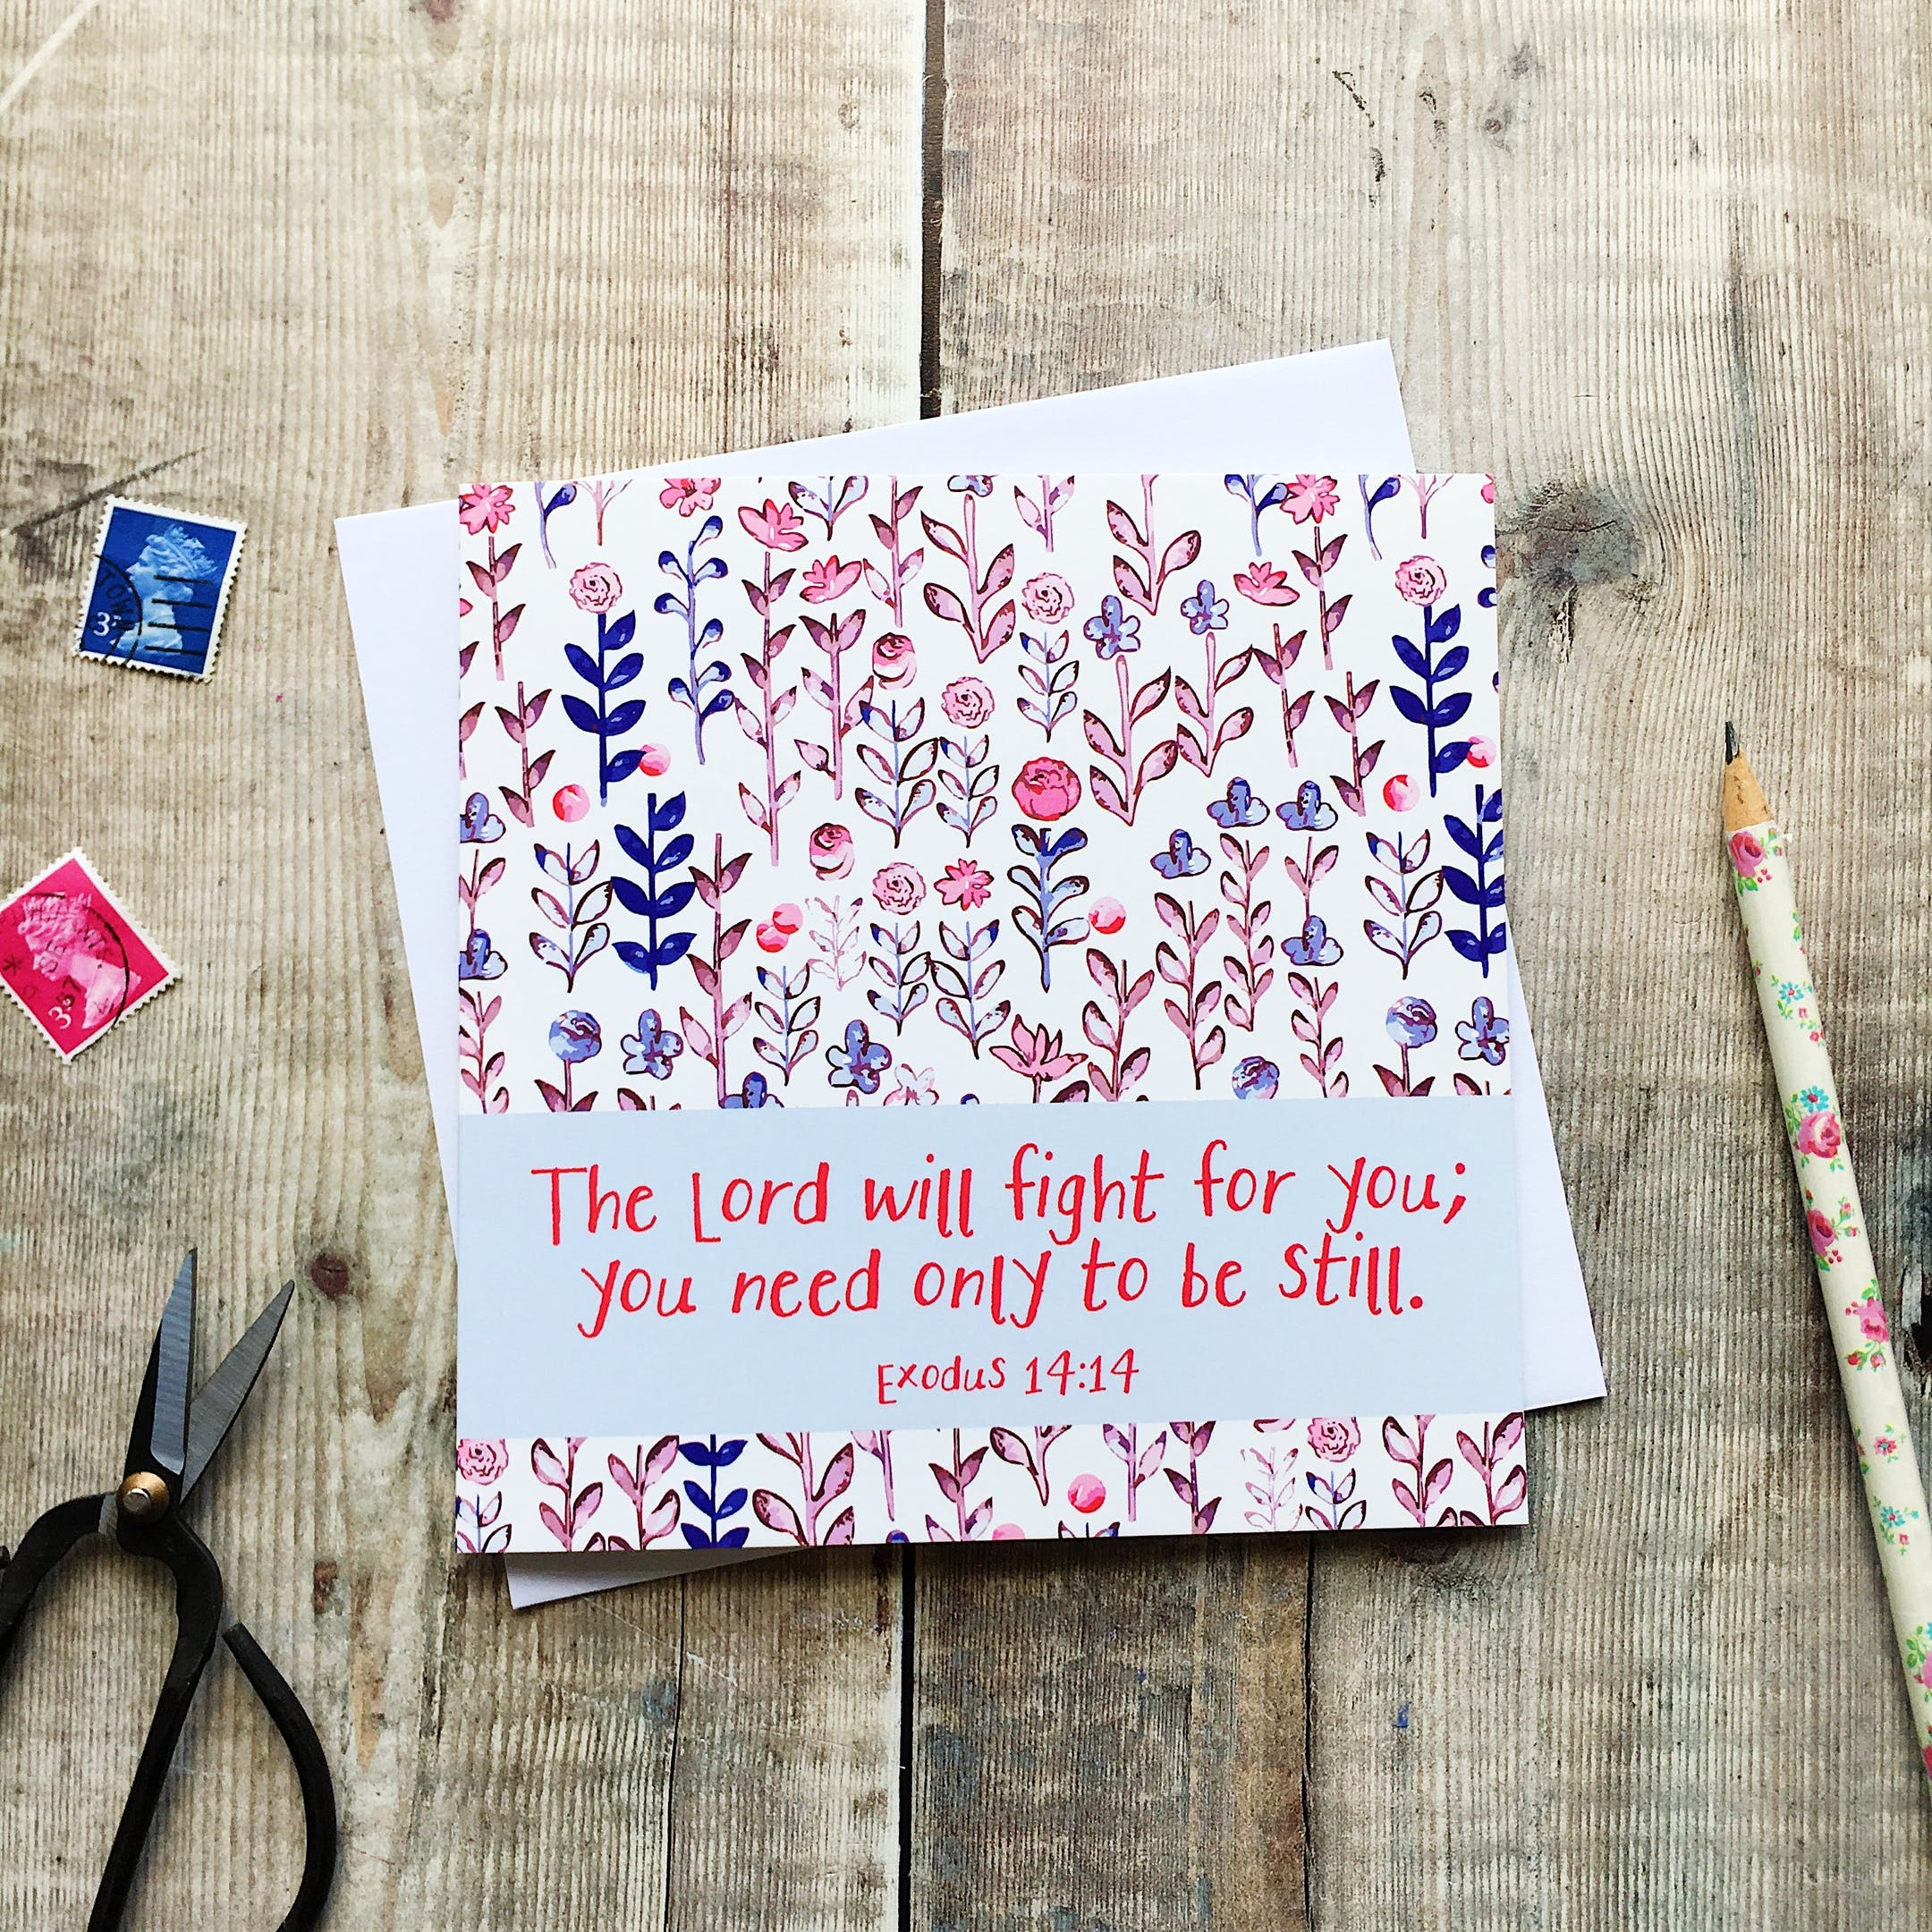 The Lord Will Fight For You, You Need Only To Be Still Card - Exodus 14:14 - Izzy and Pop